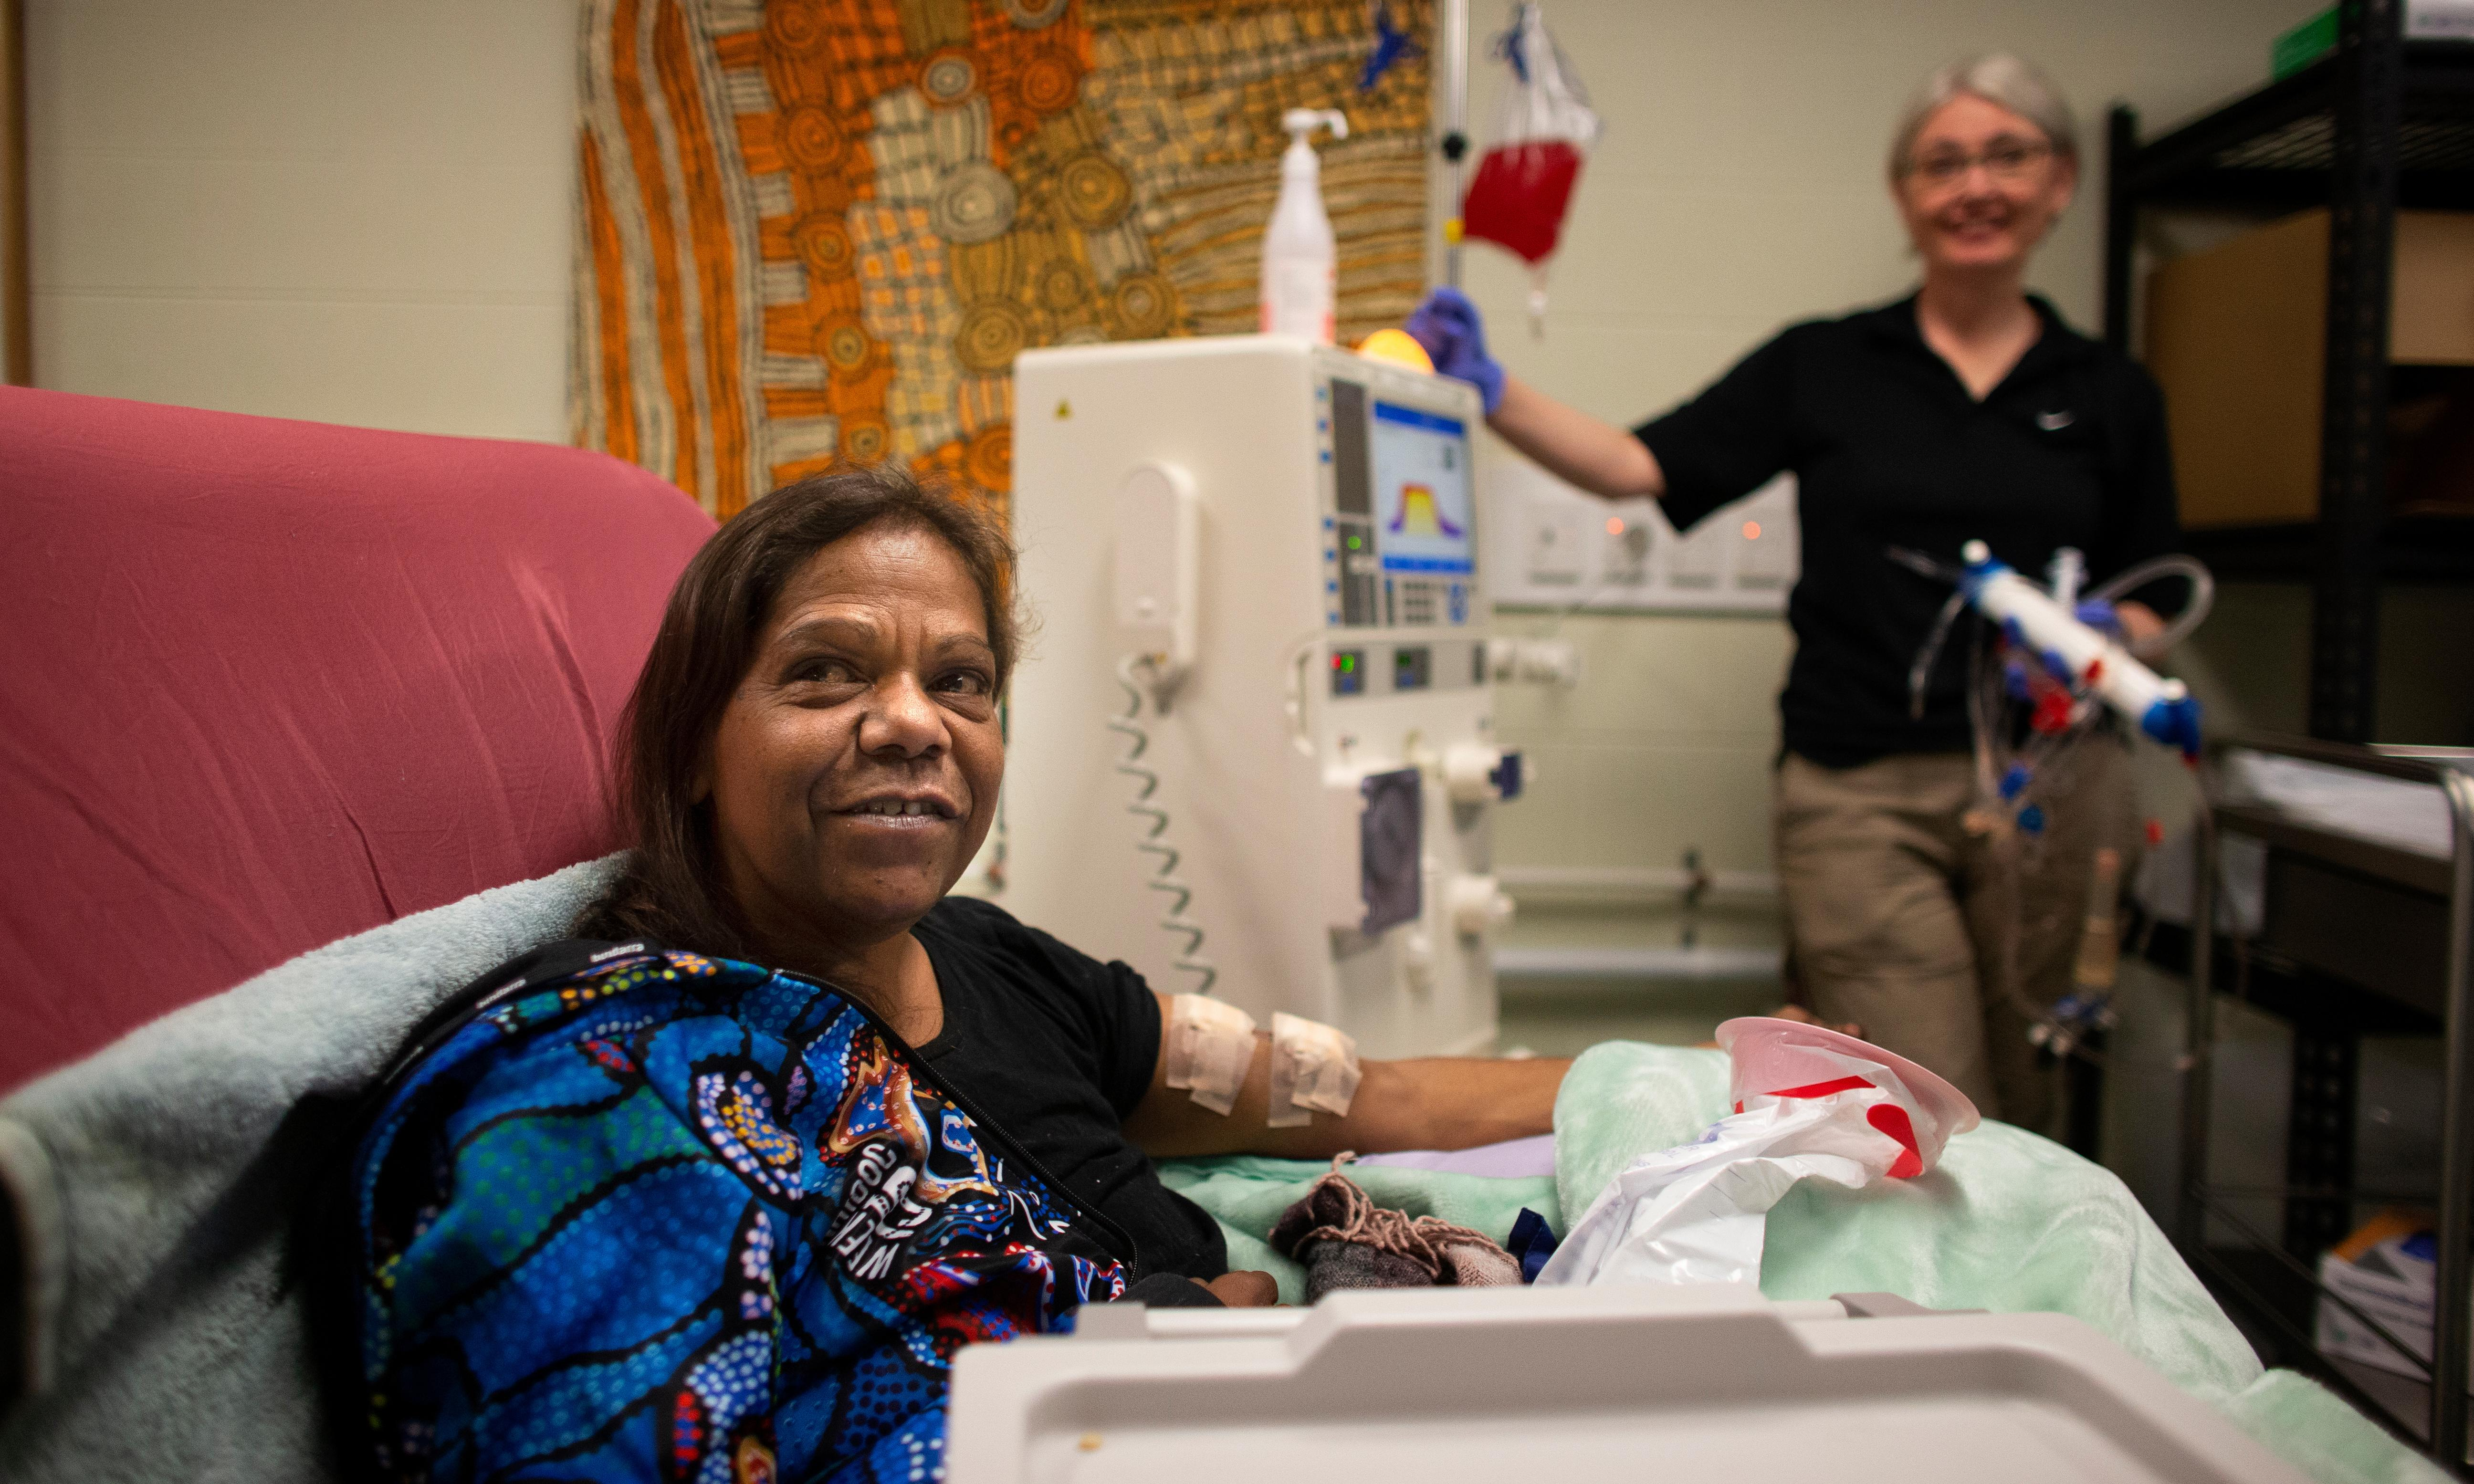 Heatwave and drought a dangerous mix for dialysis patients in remote communities